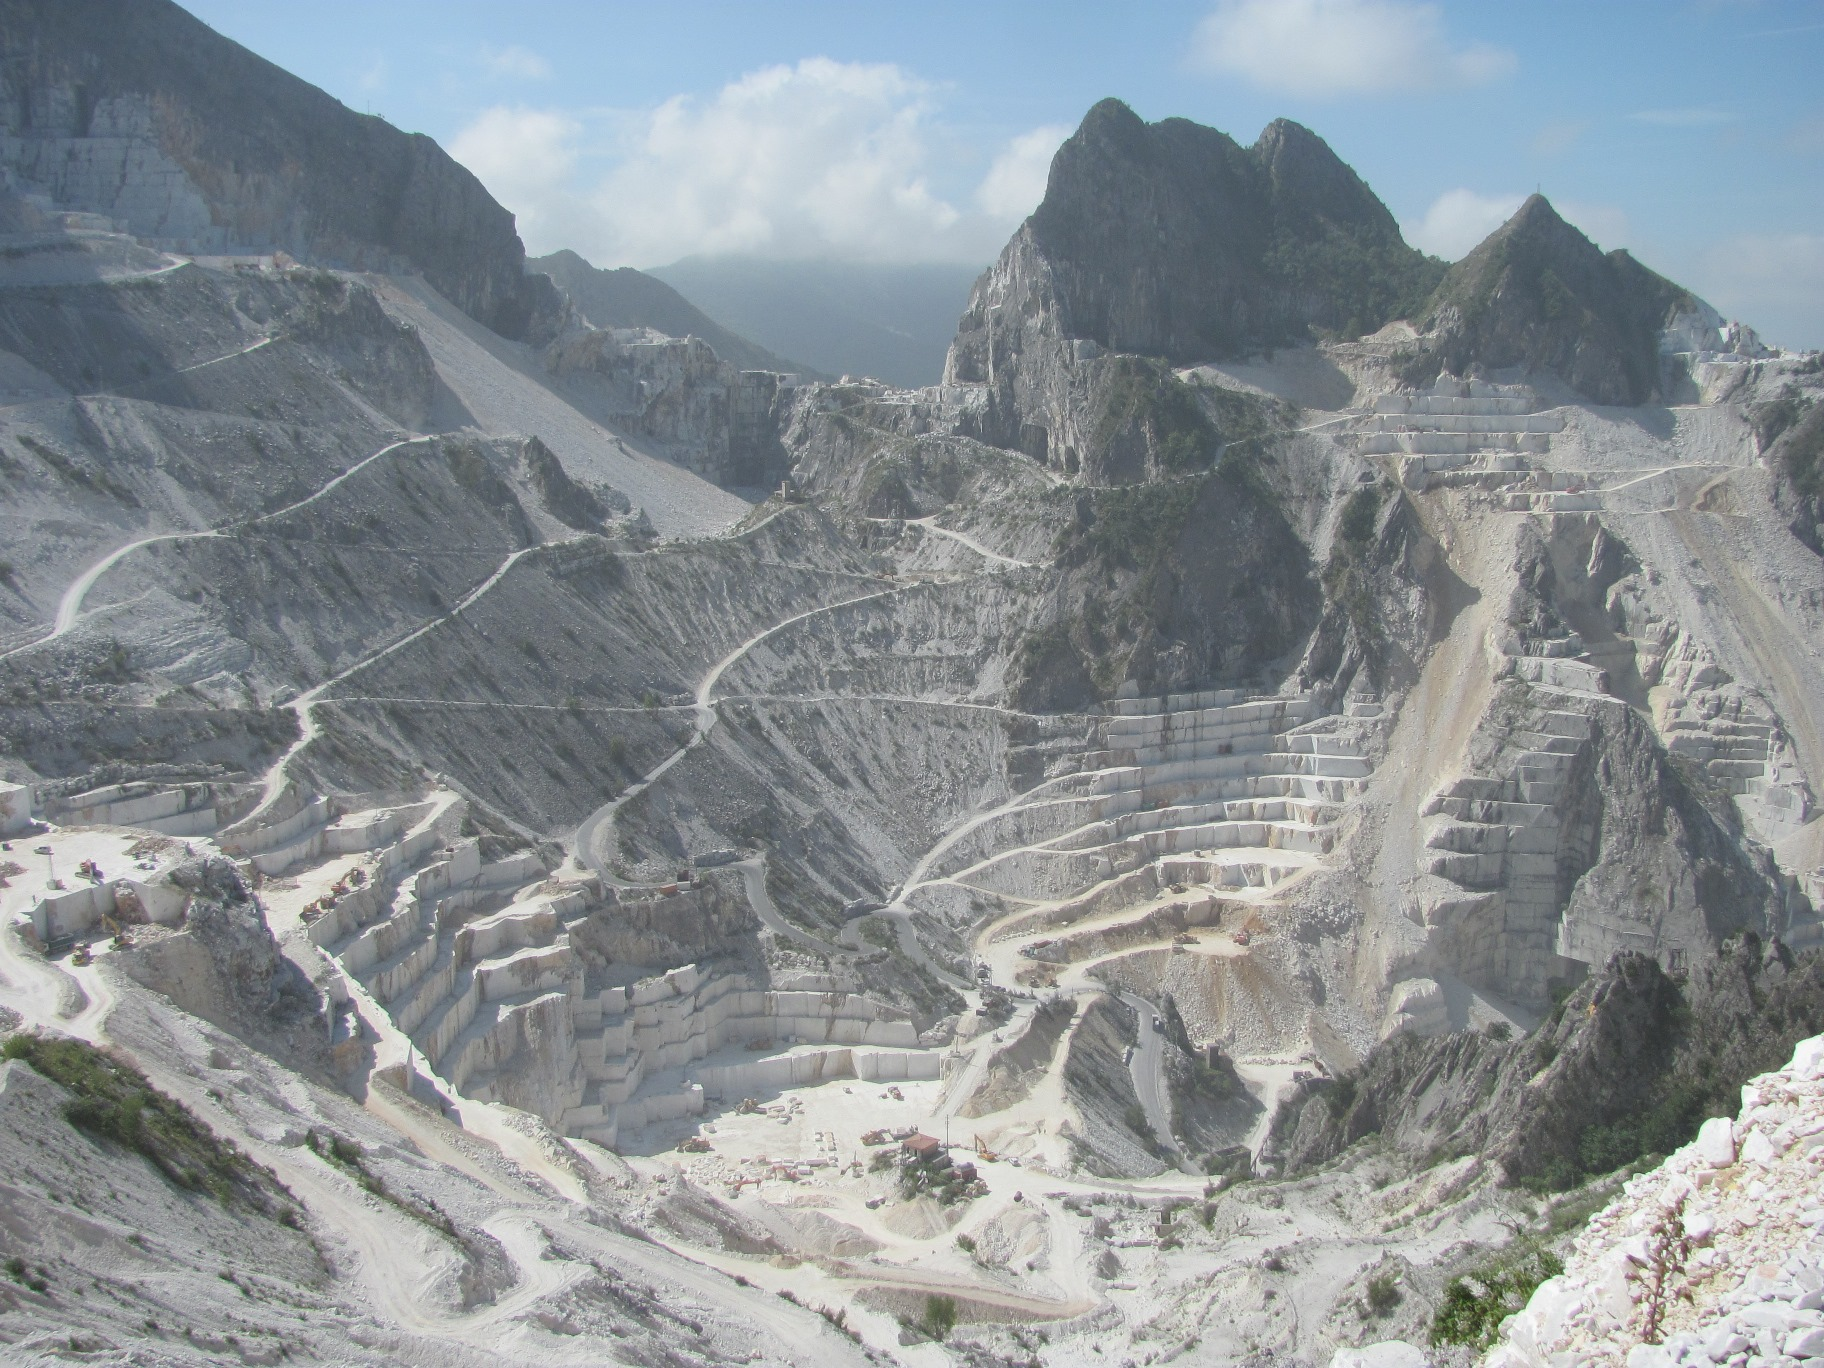 View on Bacino di Gioia (Carrara Marble Quarries)